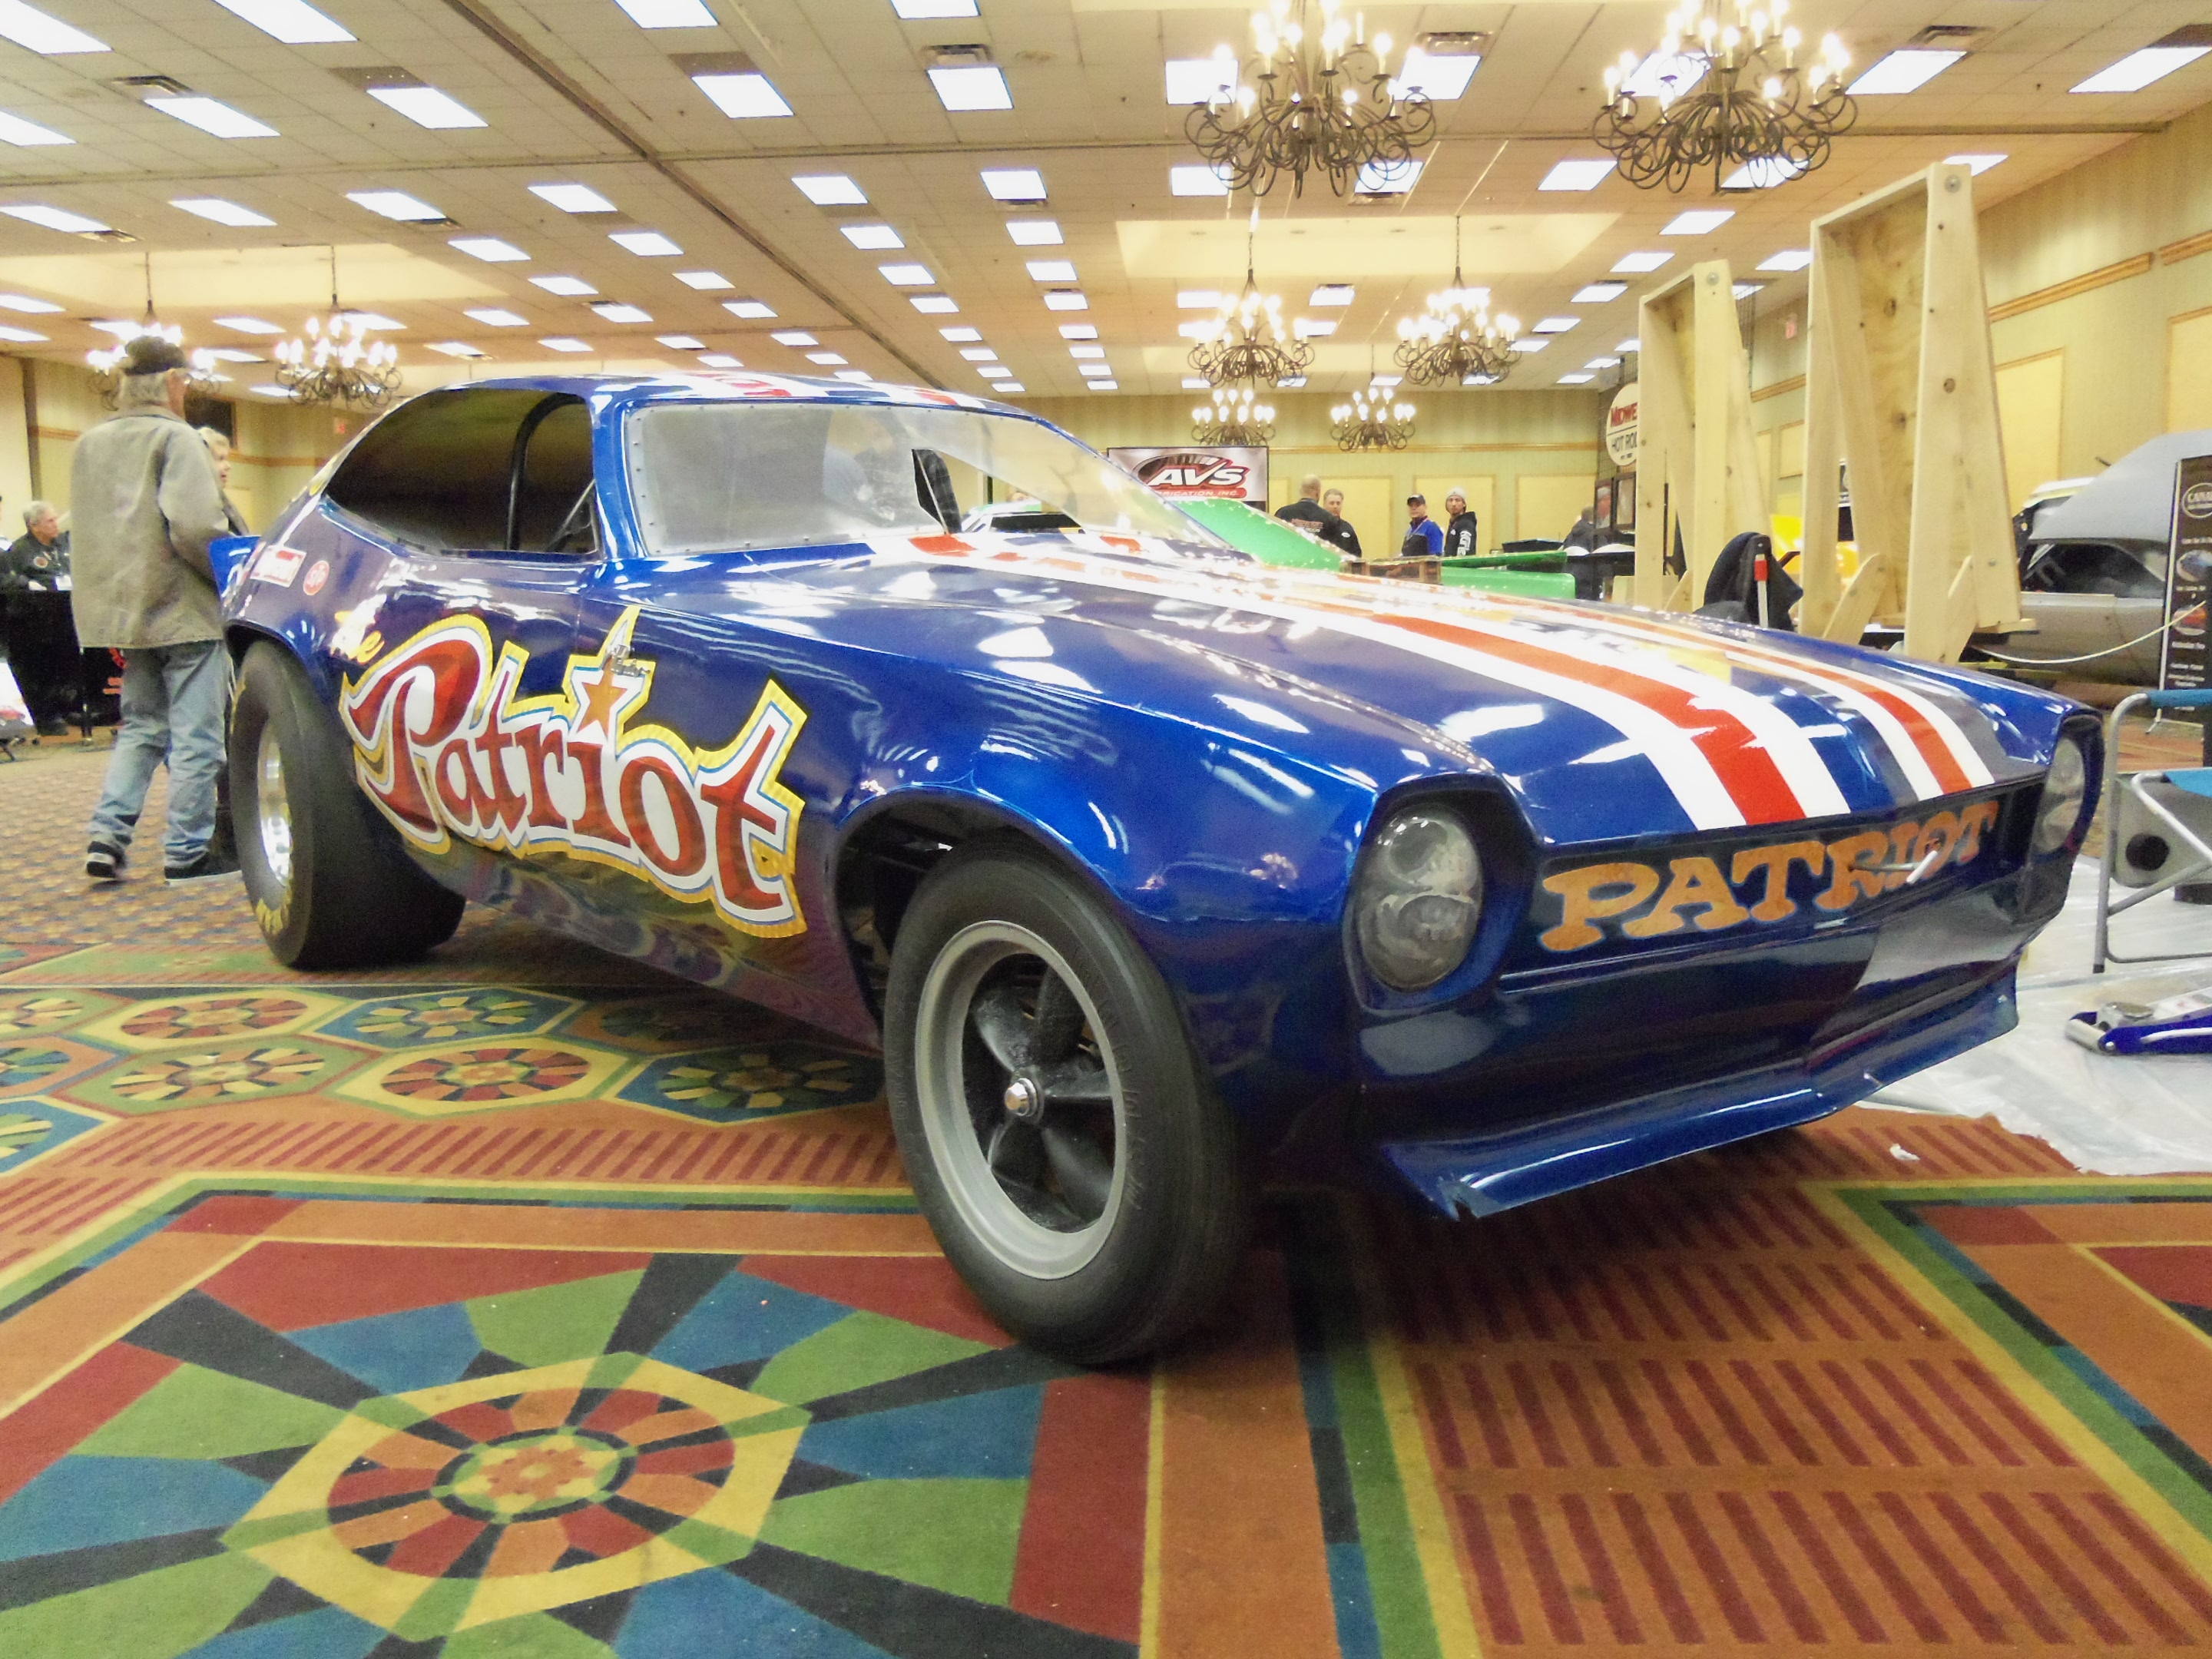 1971_Pinto_Funny_Car_Lettered_20